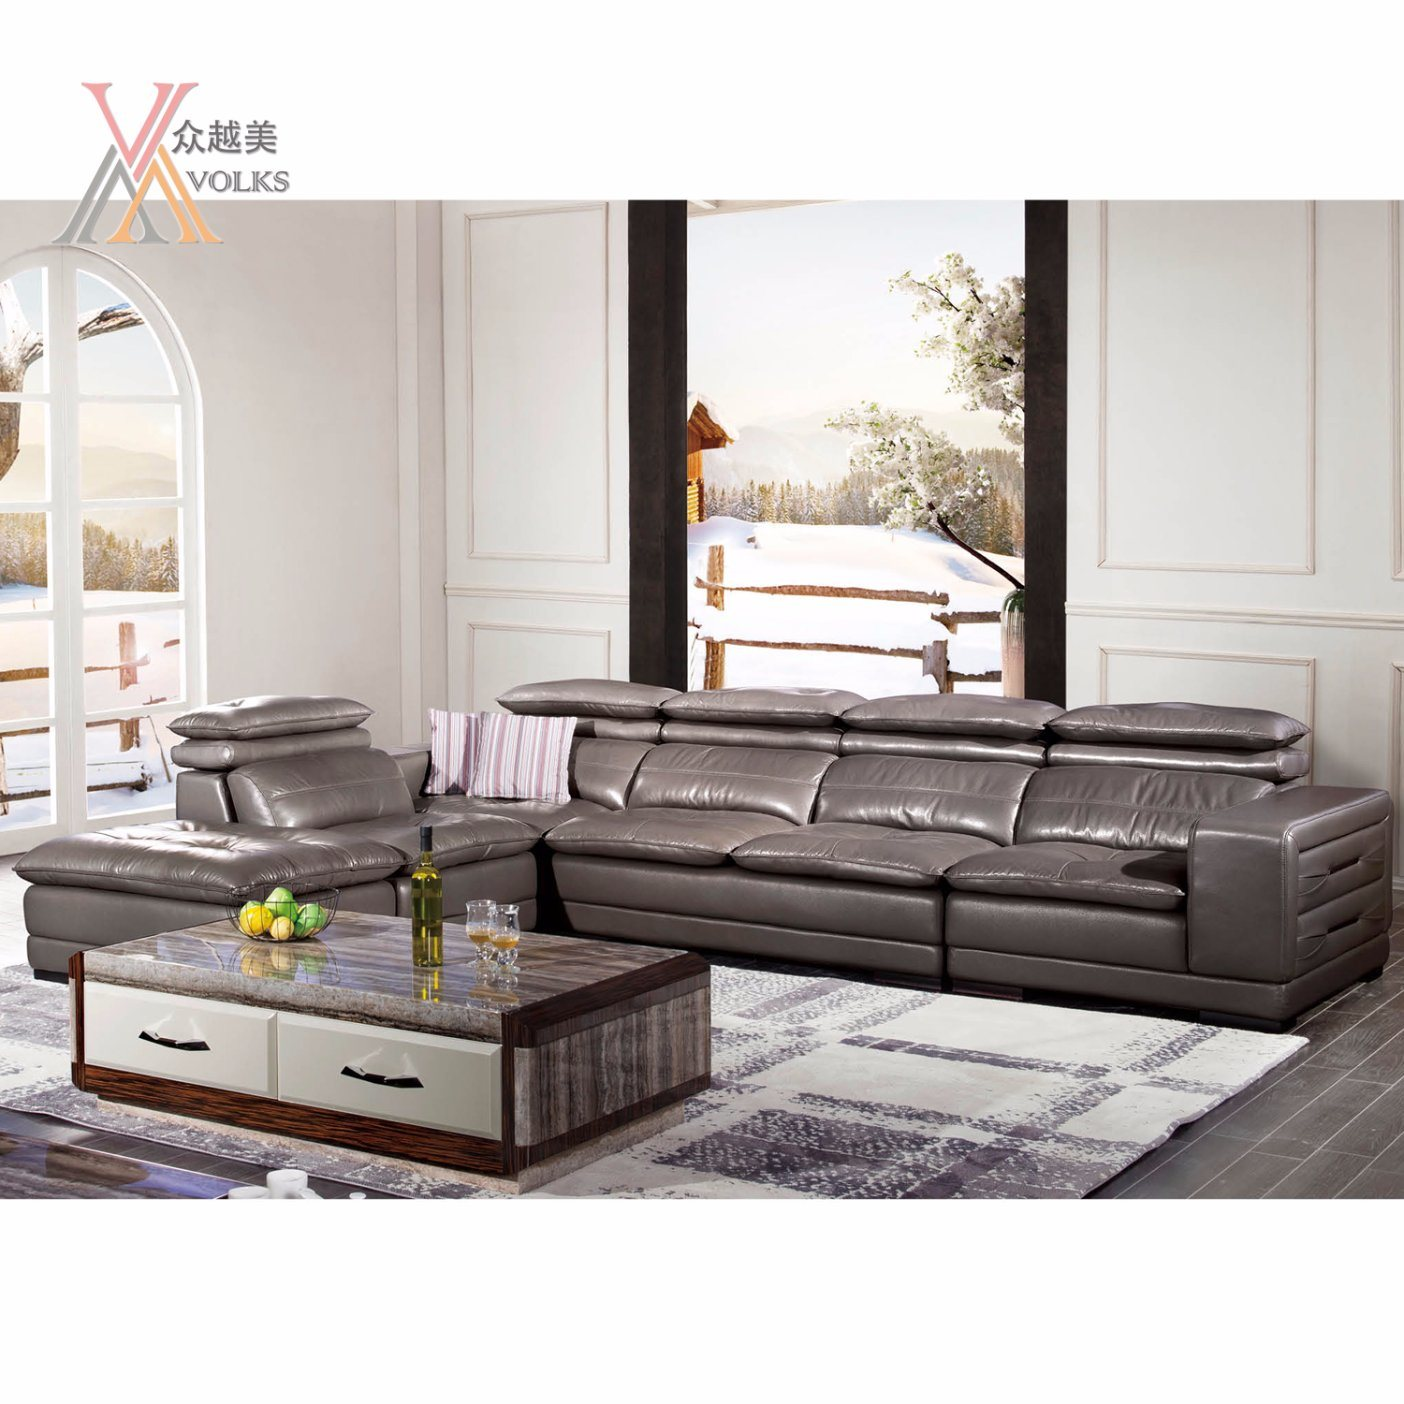 Modern Leather Sofa with Stereo Equipment (1620A)